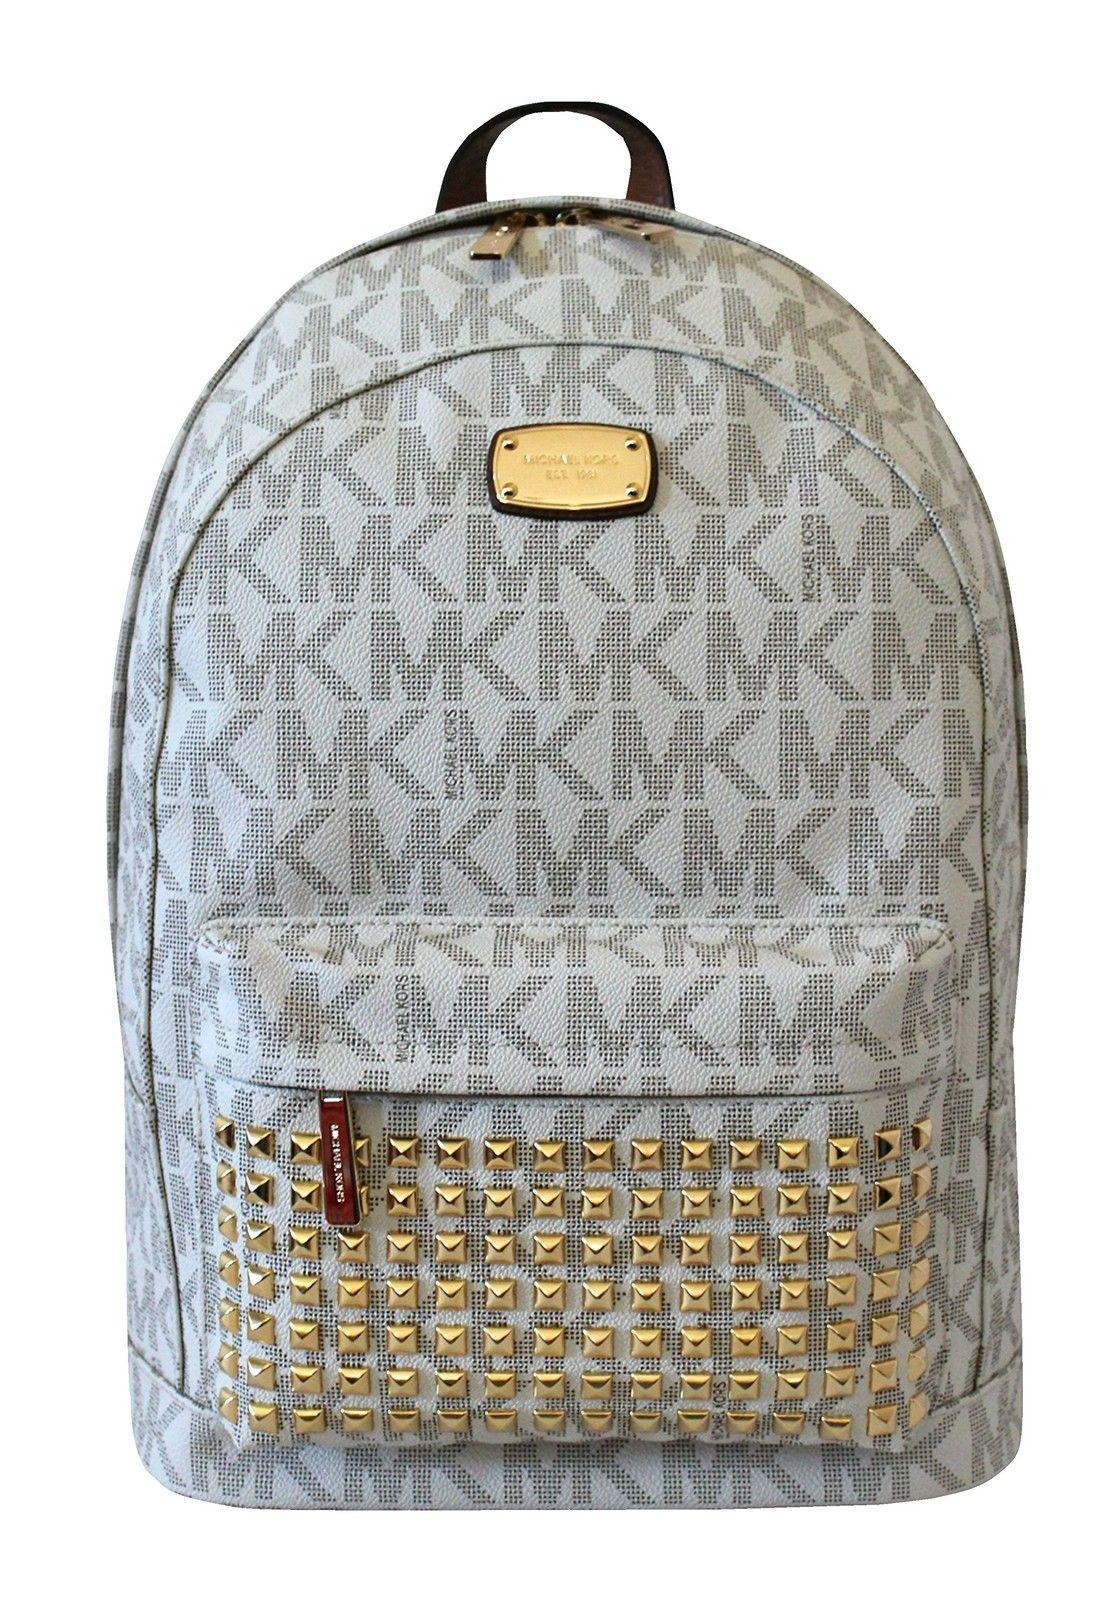 bce5de7d74b5 Buy mk backpack for sale > OFF38% Discounted